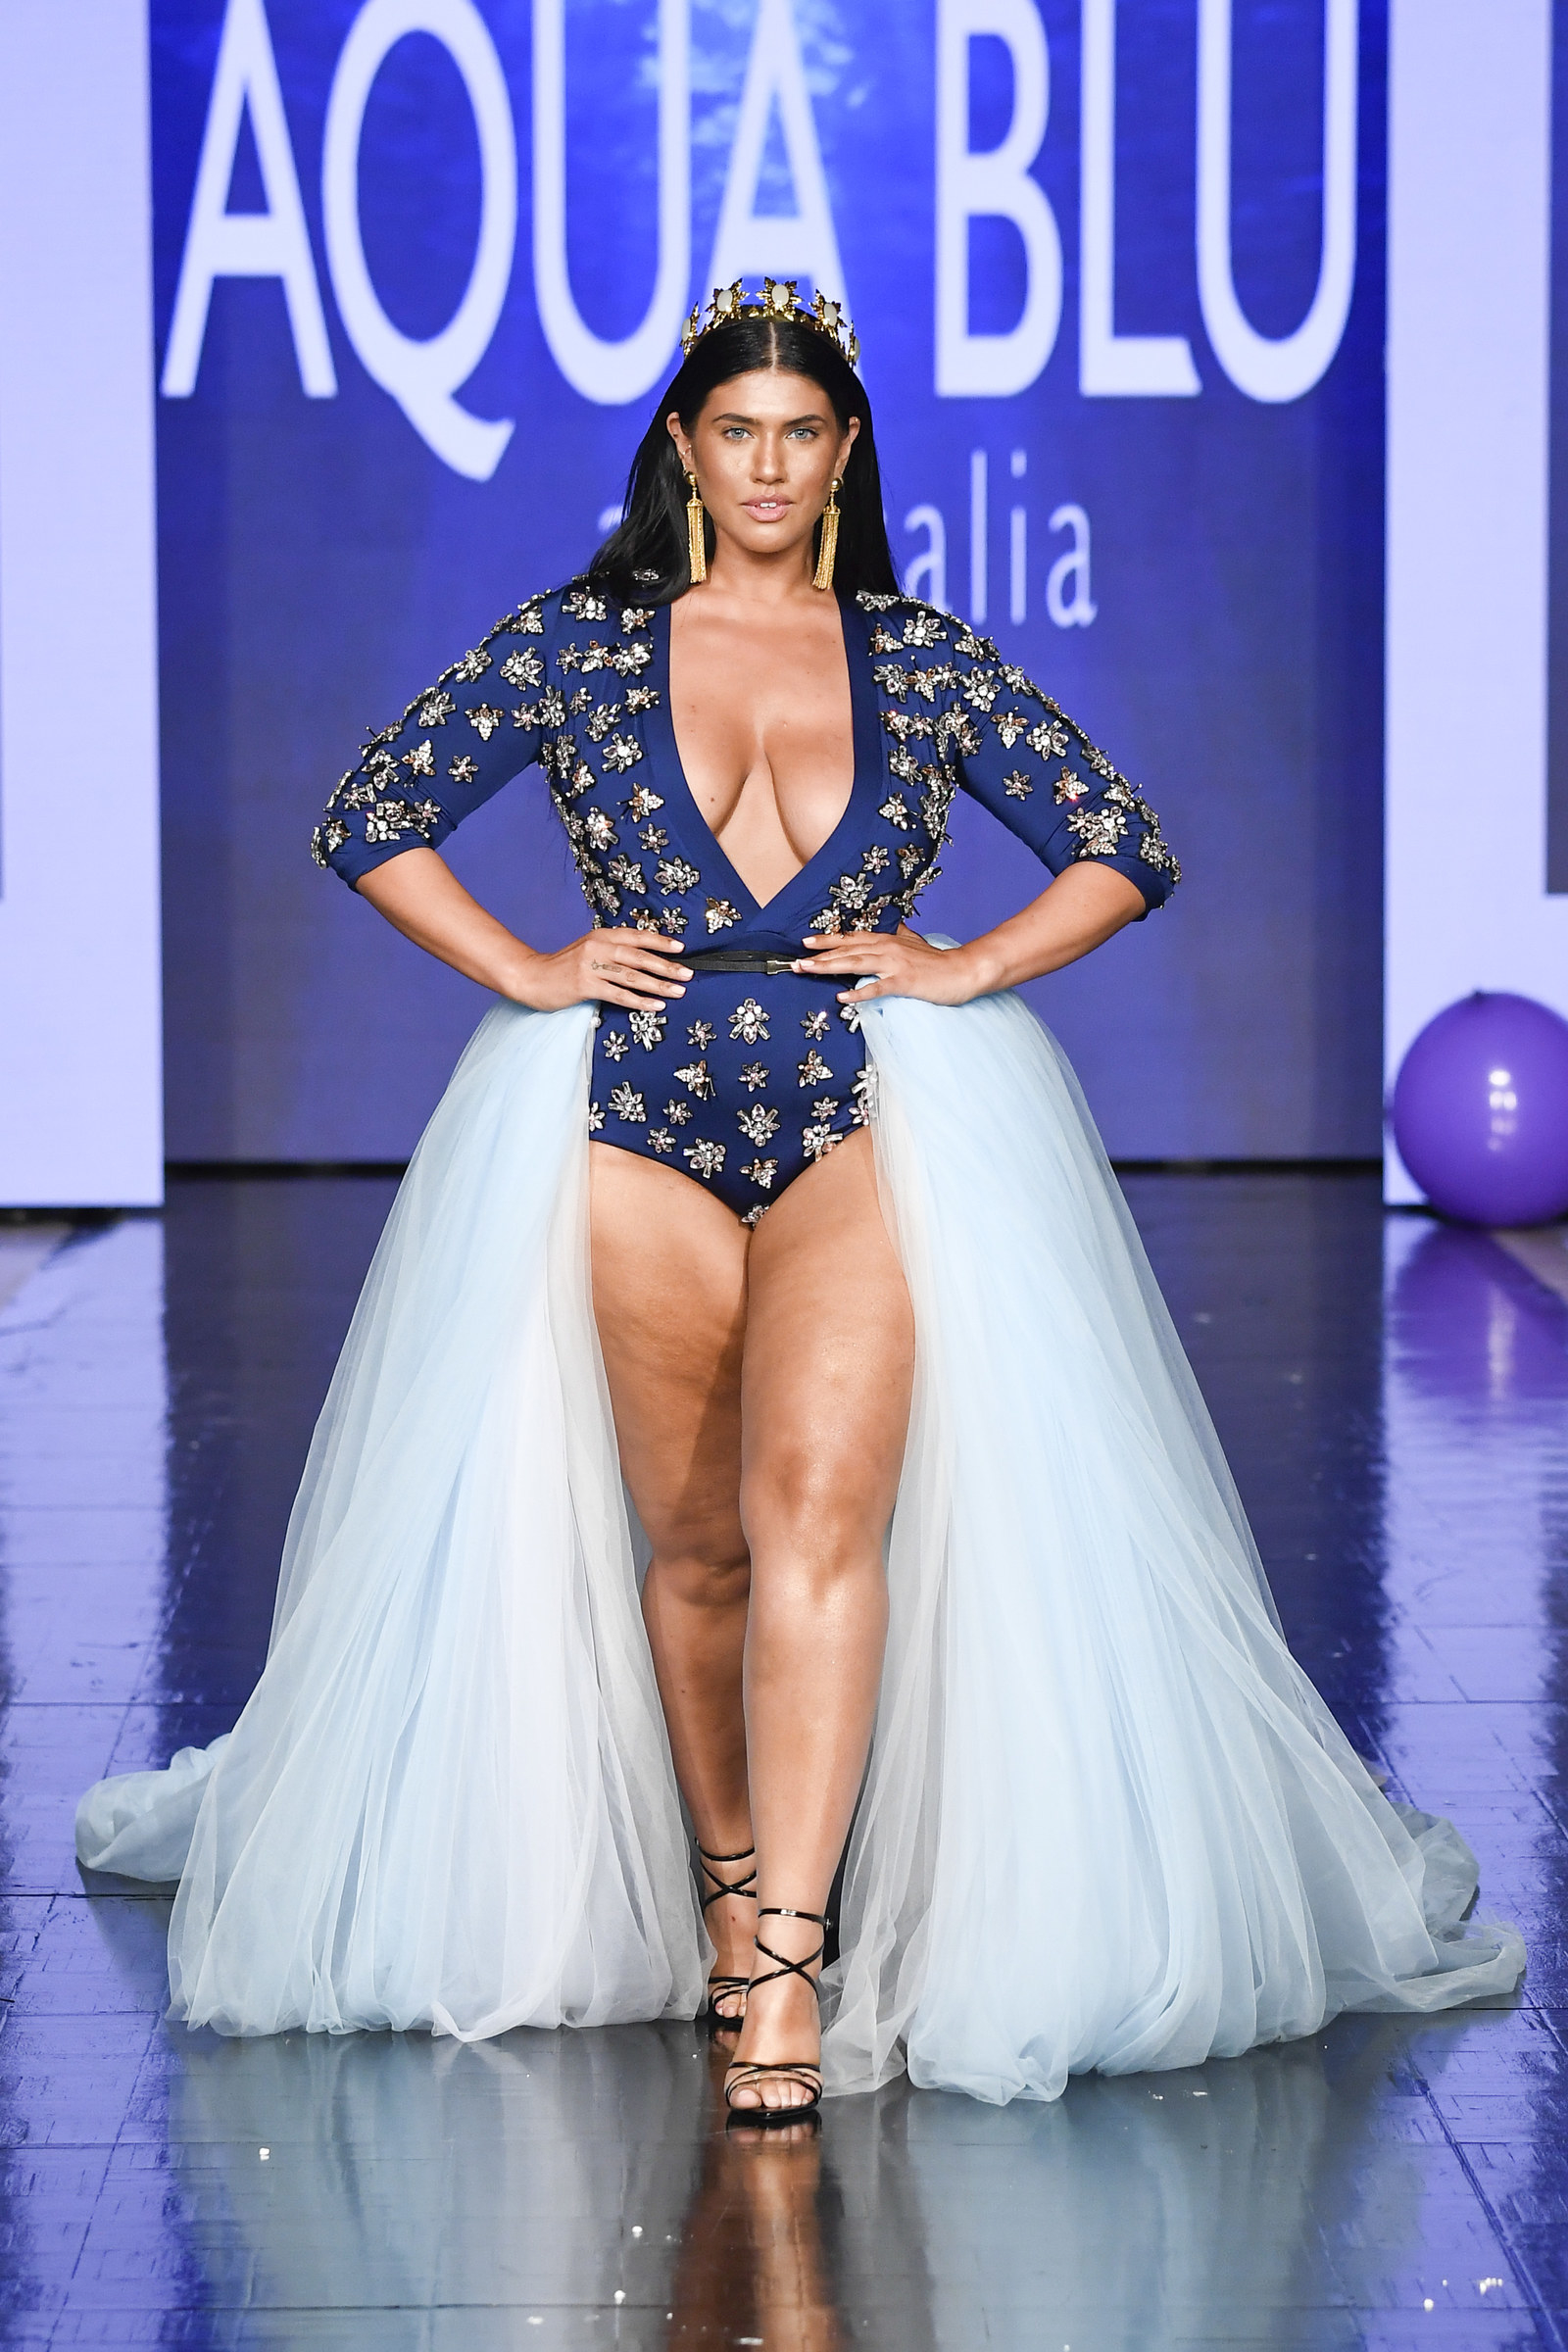 Aussie Labels Owned Miami Swim Week With These 11 Stunning